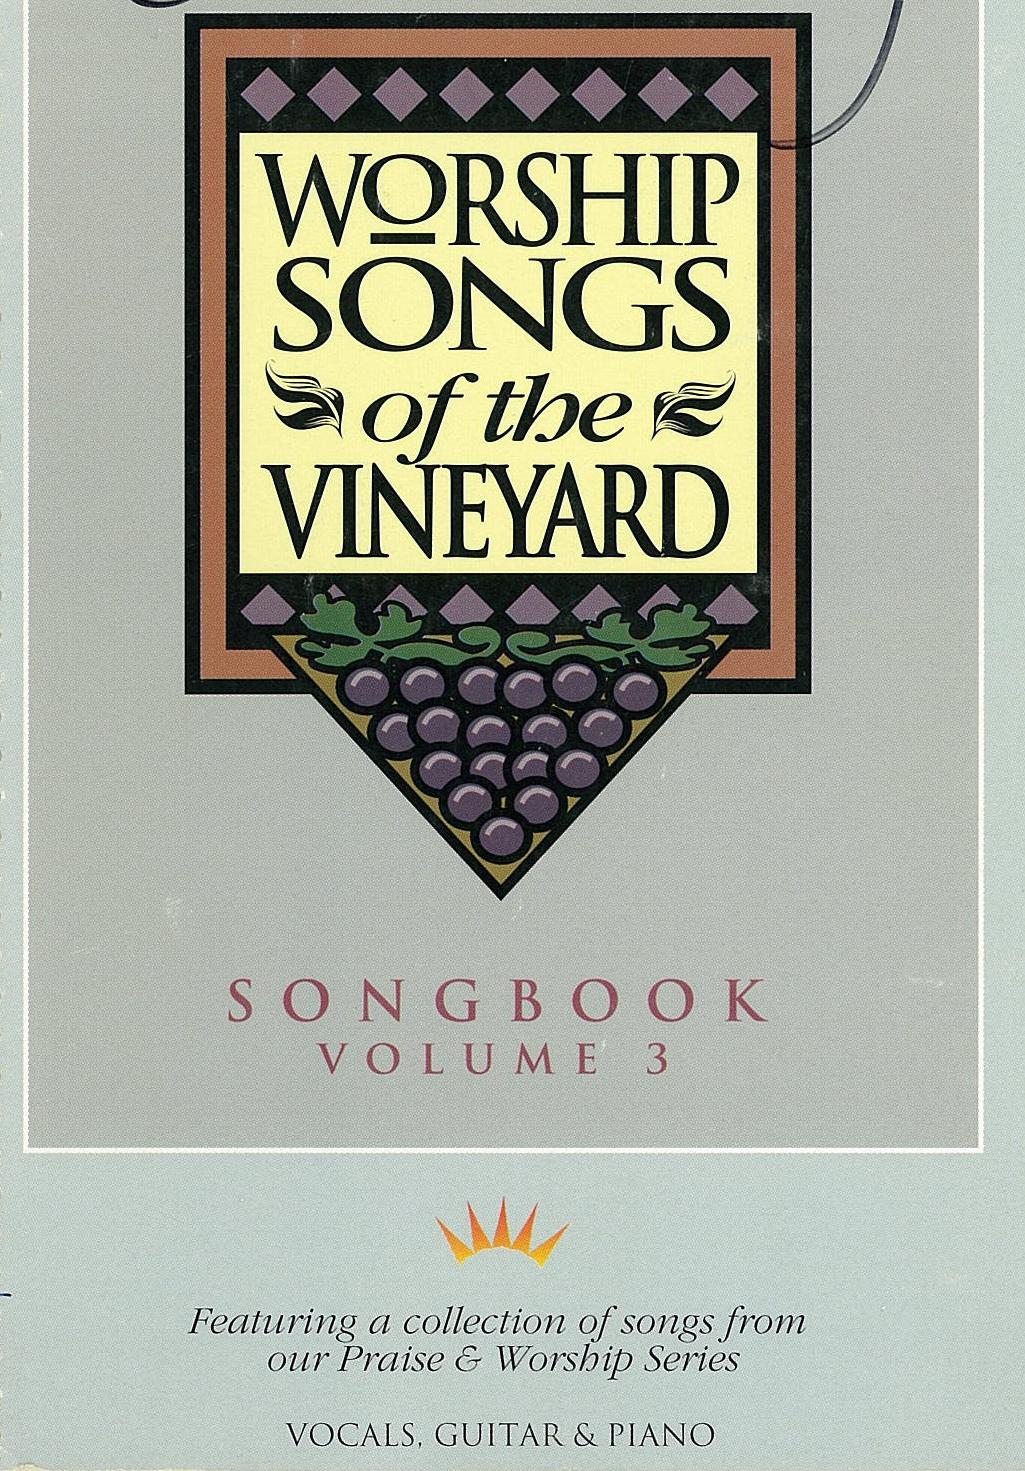 Worship Songs Of The Vineyard – Volume 3 [PDF Songbook]